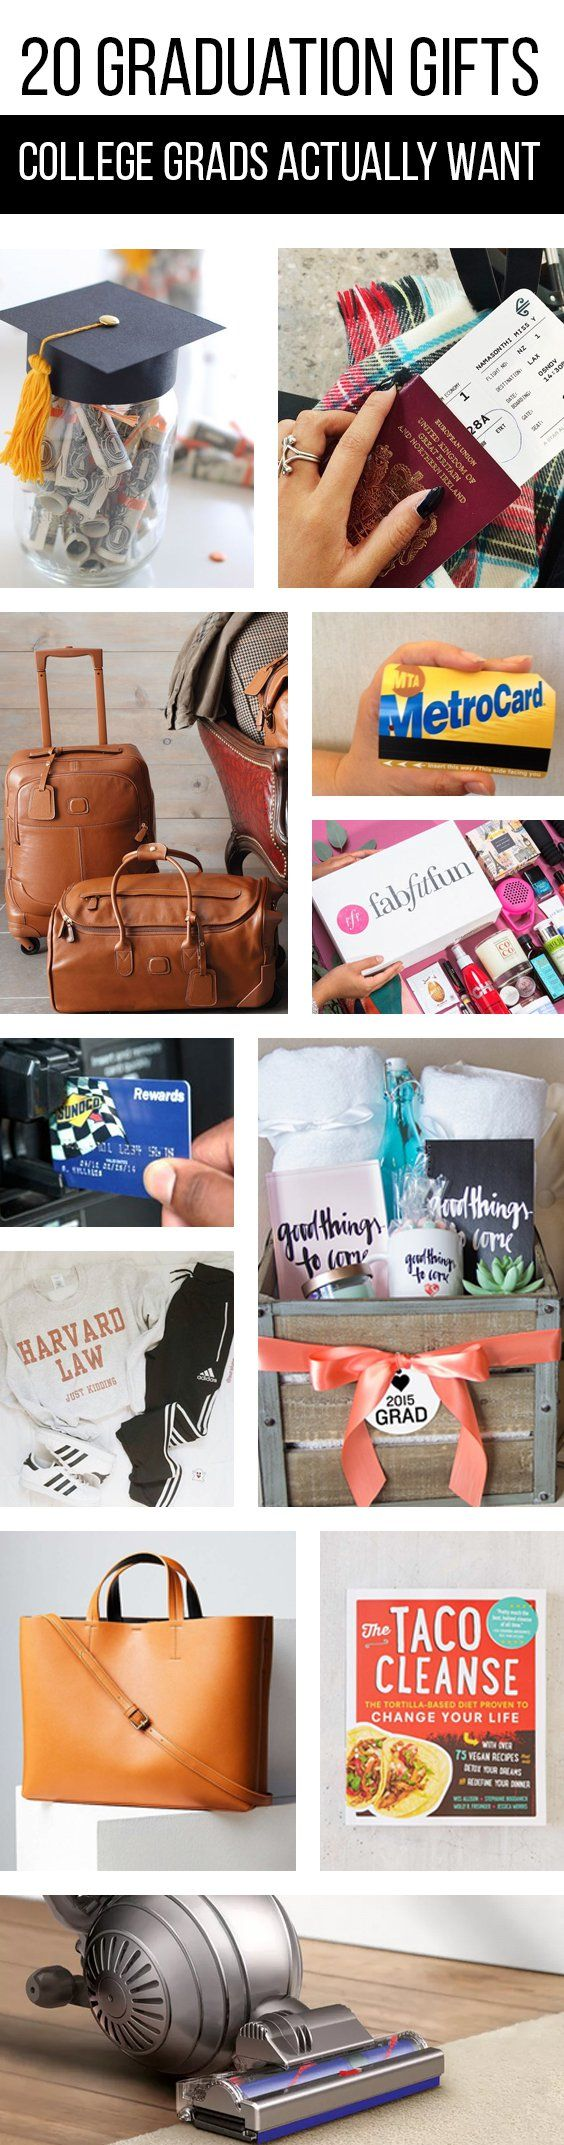 20 Graduation Gifts College Grads Actually Want (And Need)